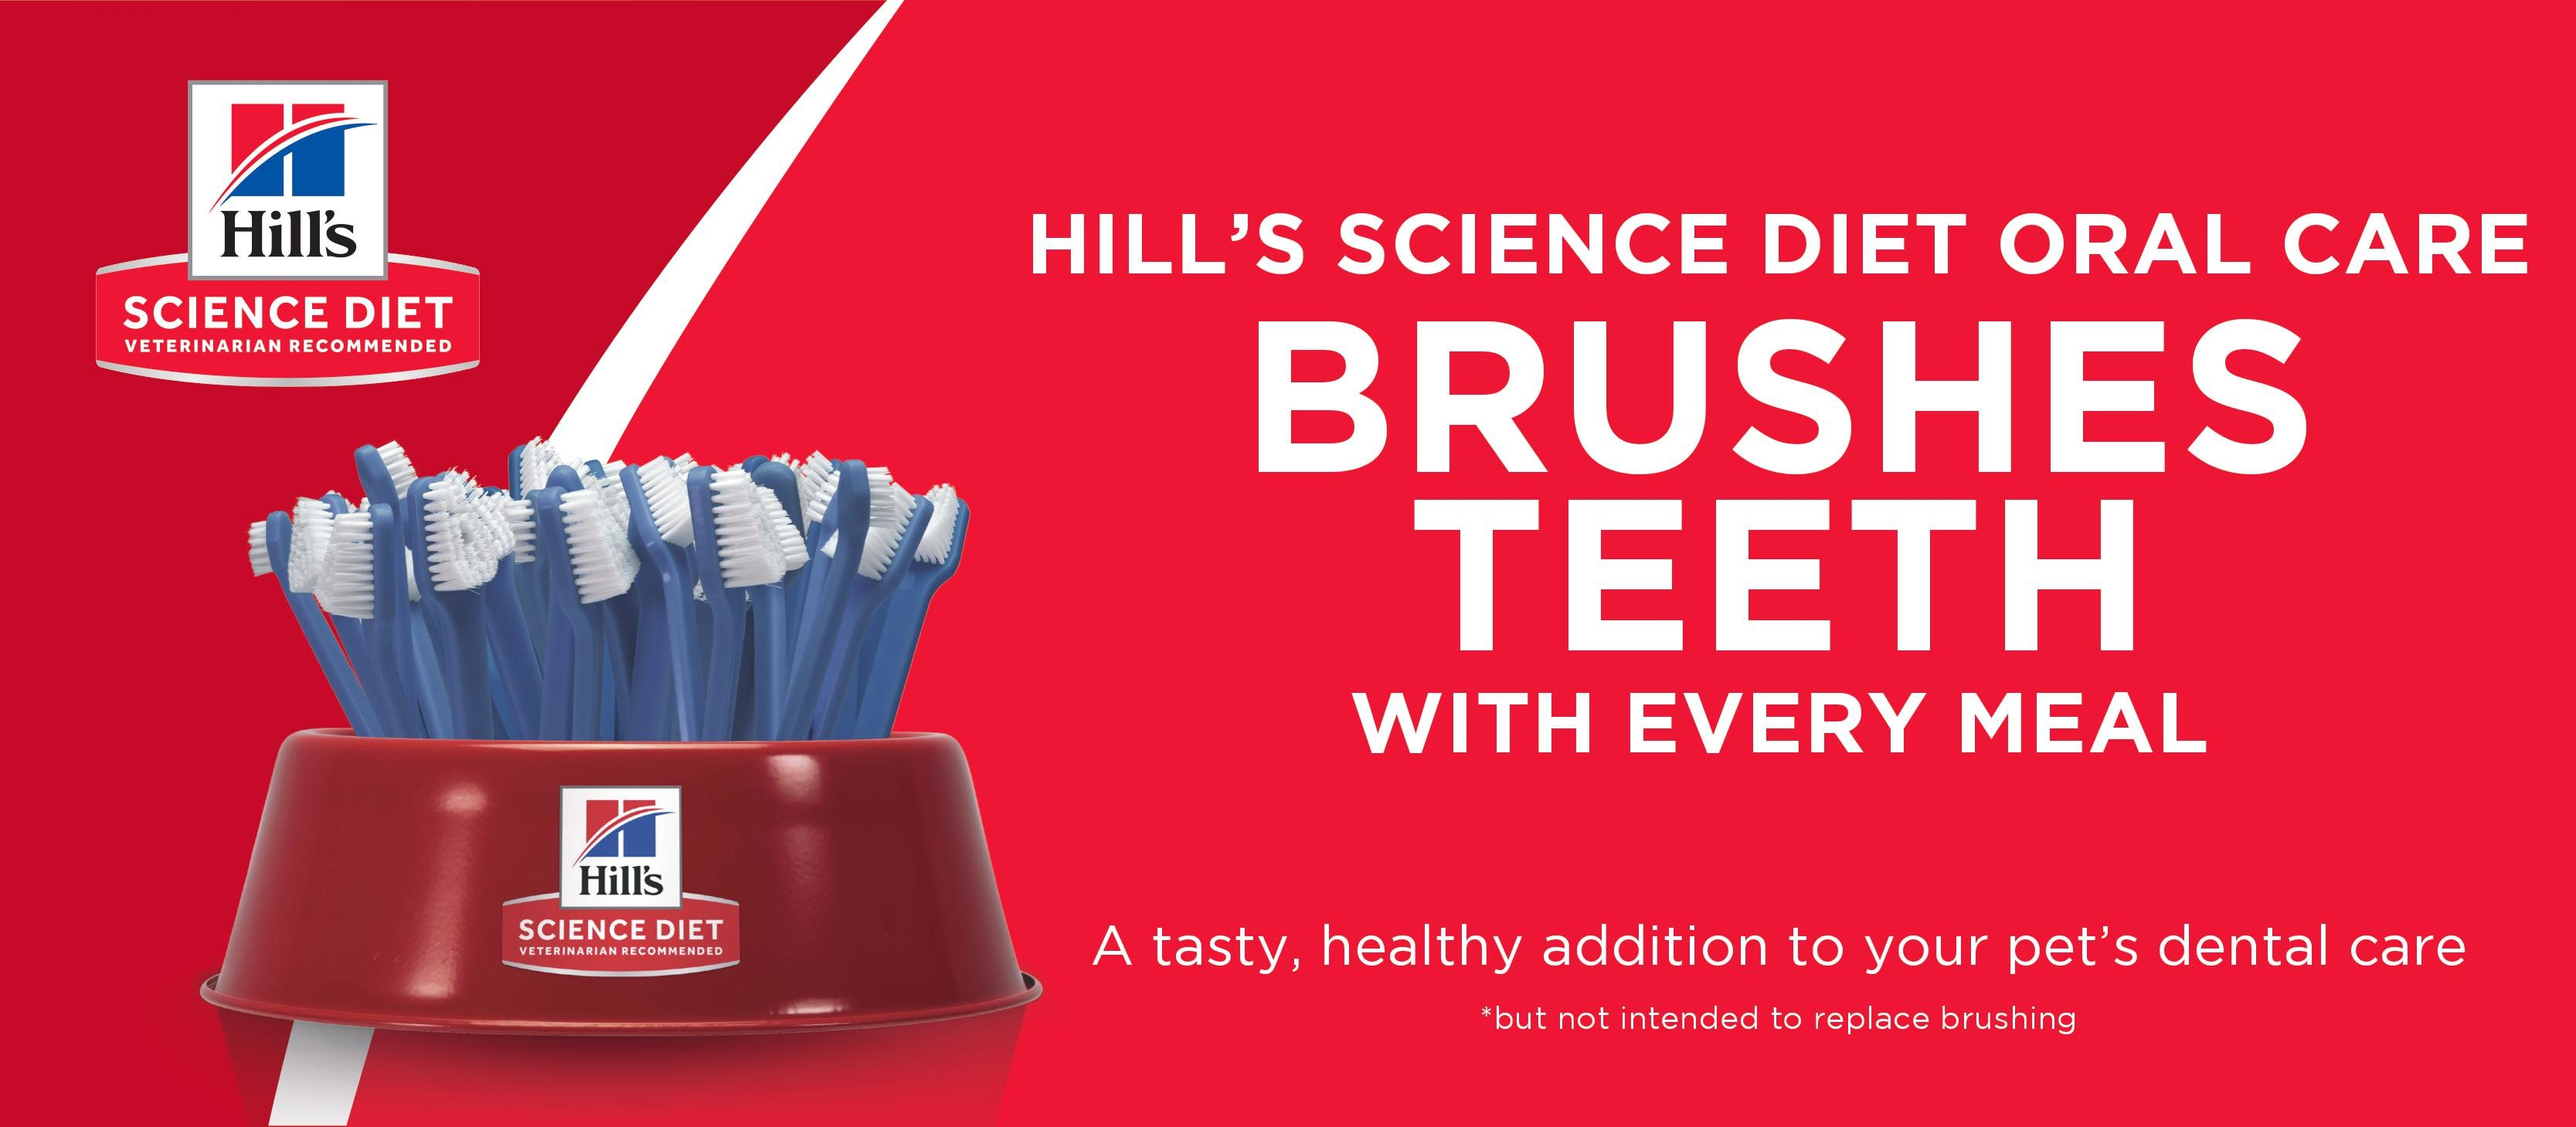 Hill's Science Diet Oral Care Brushes Teeth With Every Meal